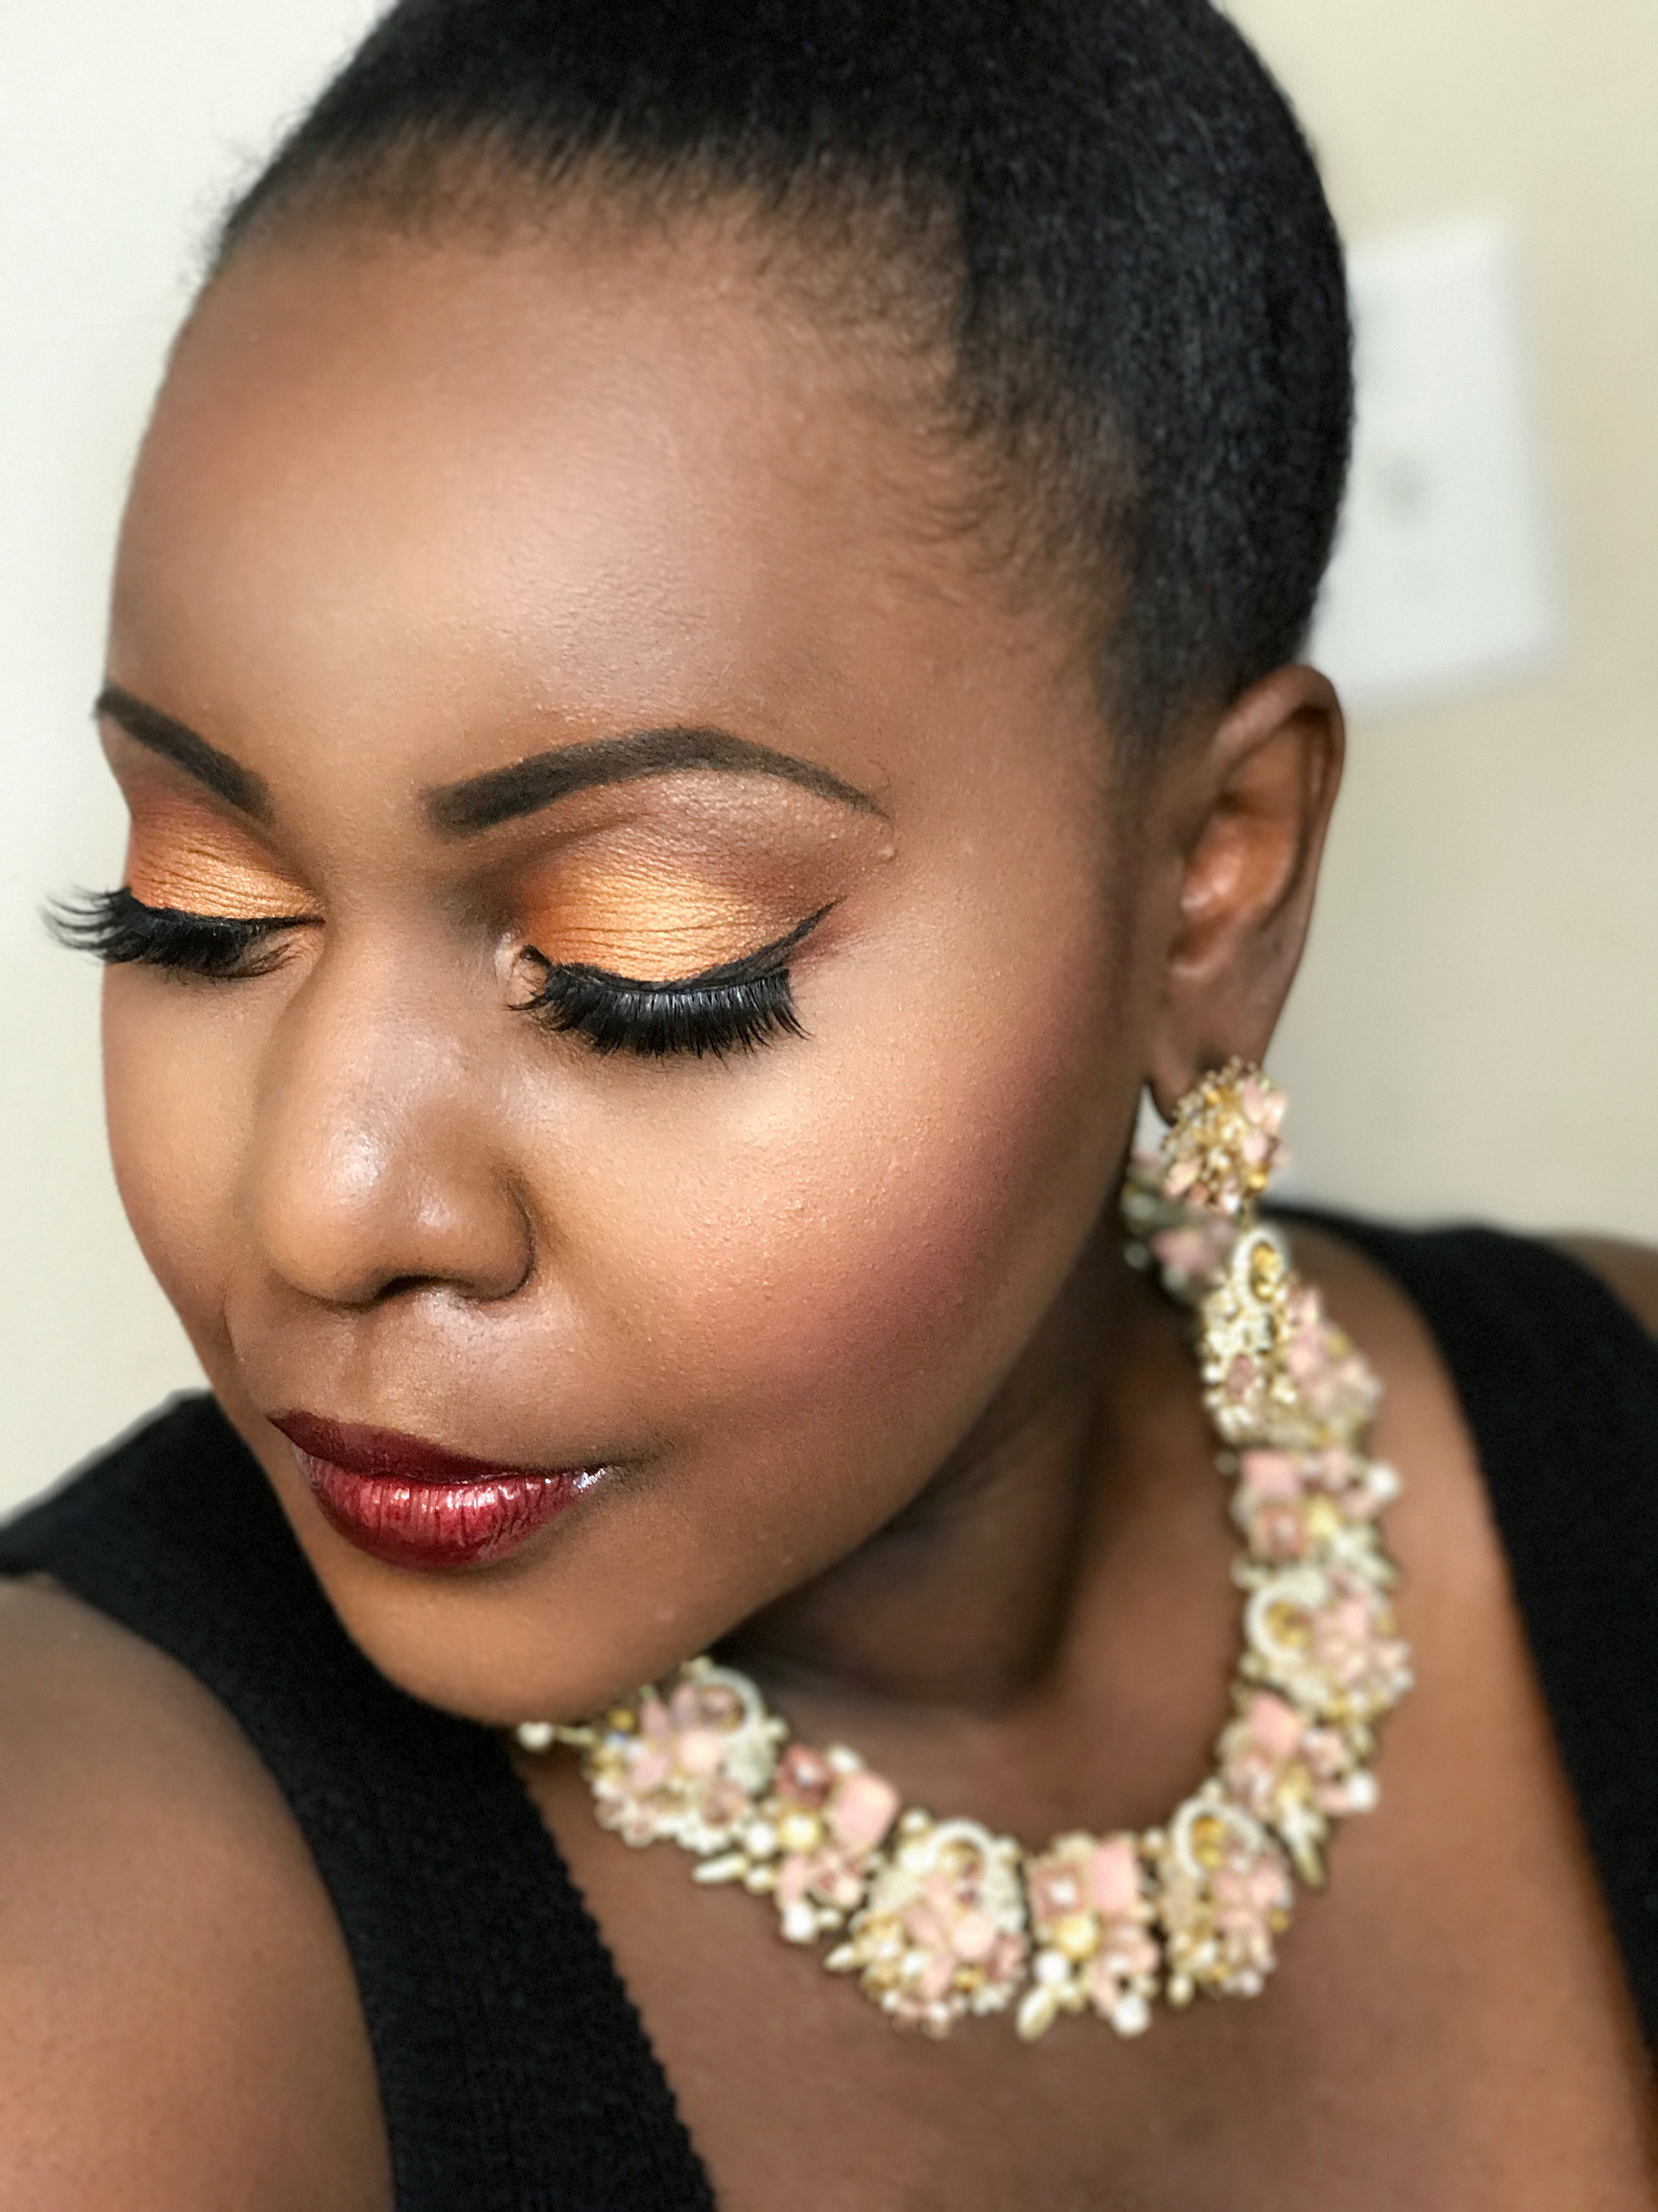 plus size fashion blogs 2017, beautiful curvy girls, how to fill the eye brow of a dark skin, beautiful plus size dark skin girls, Arbonne beauty makeup review dark skin beauty blogger